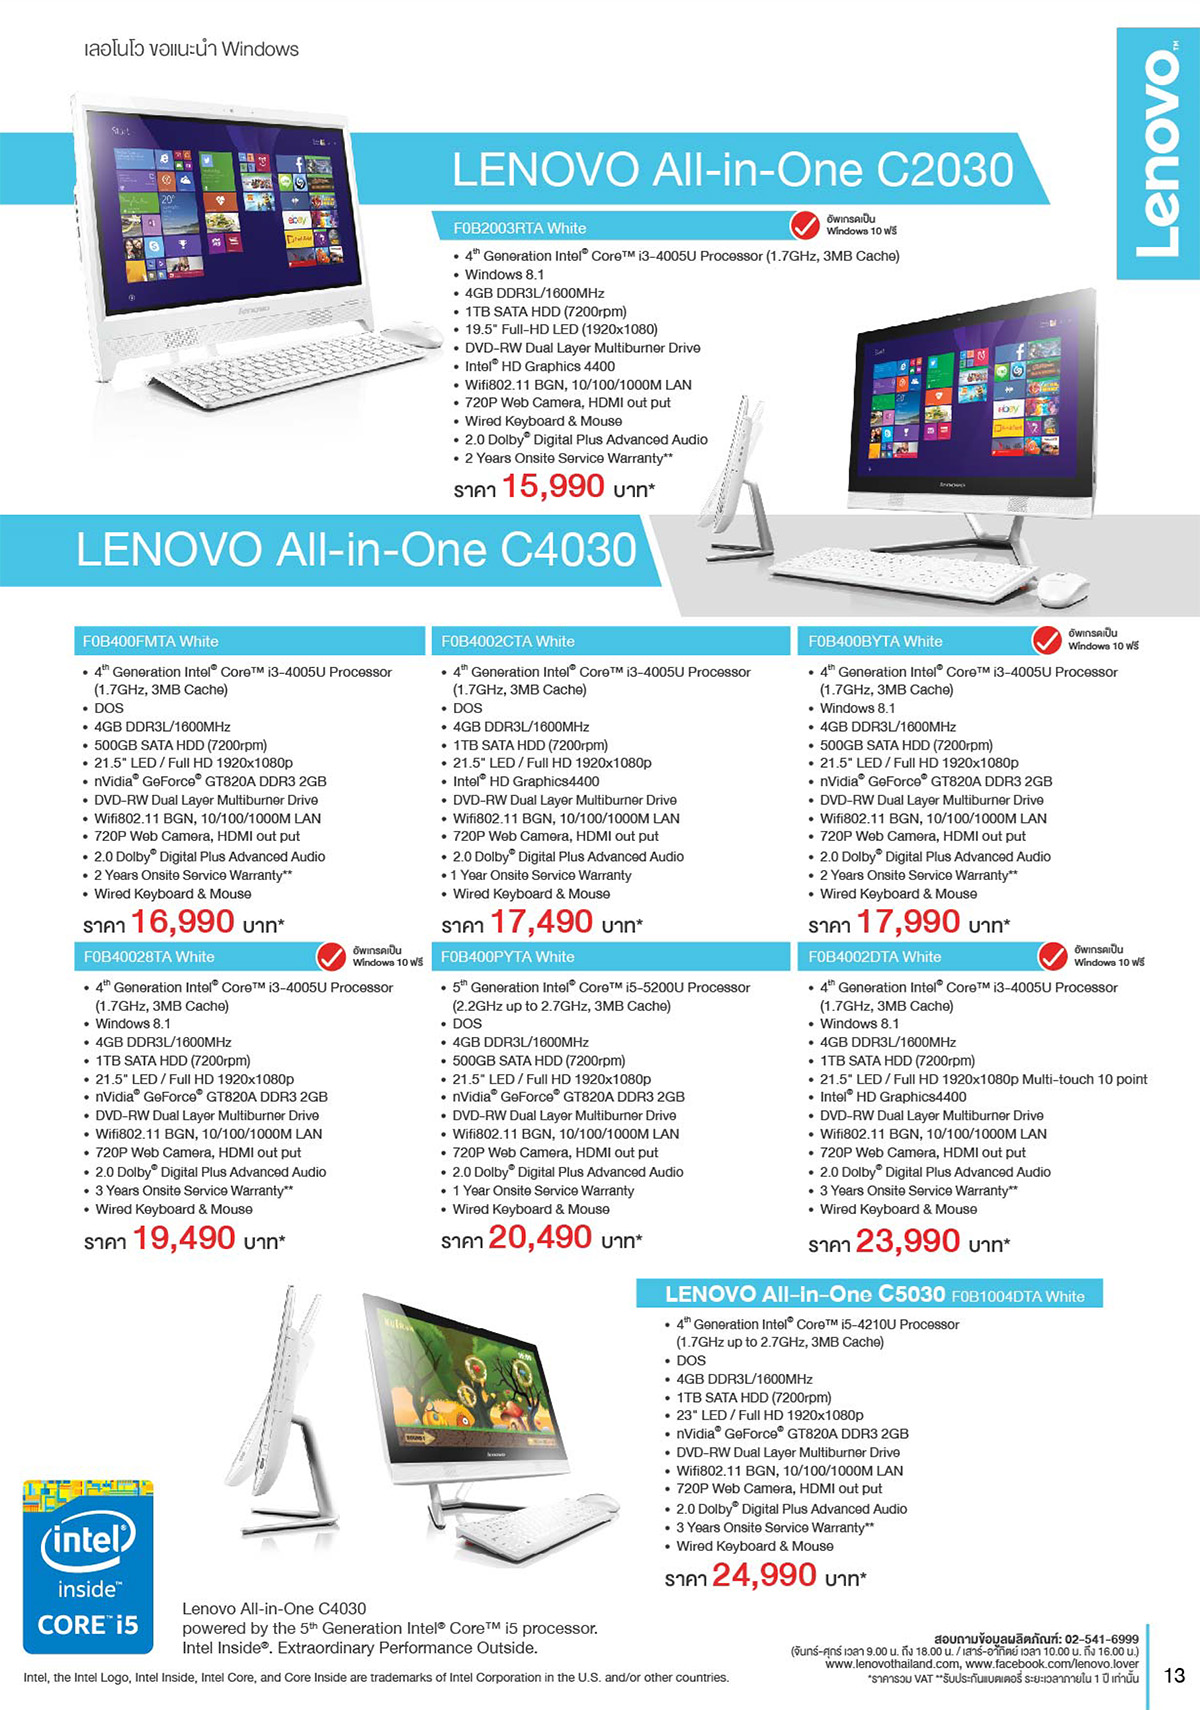 Lenovo Consumer Product Catalog Q2FY15_Final AW-13